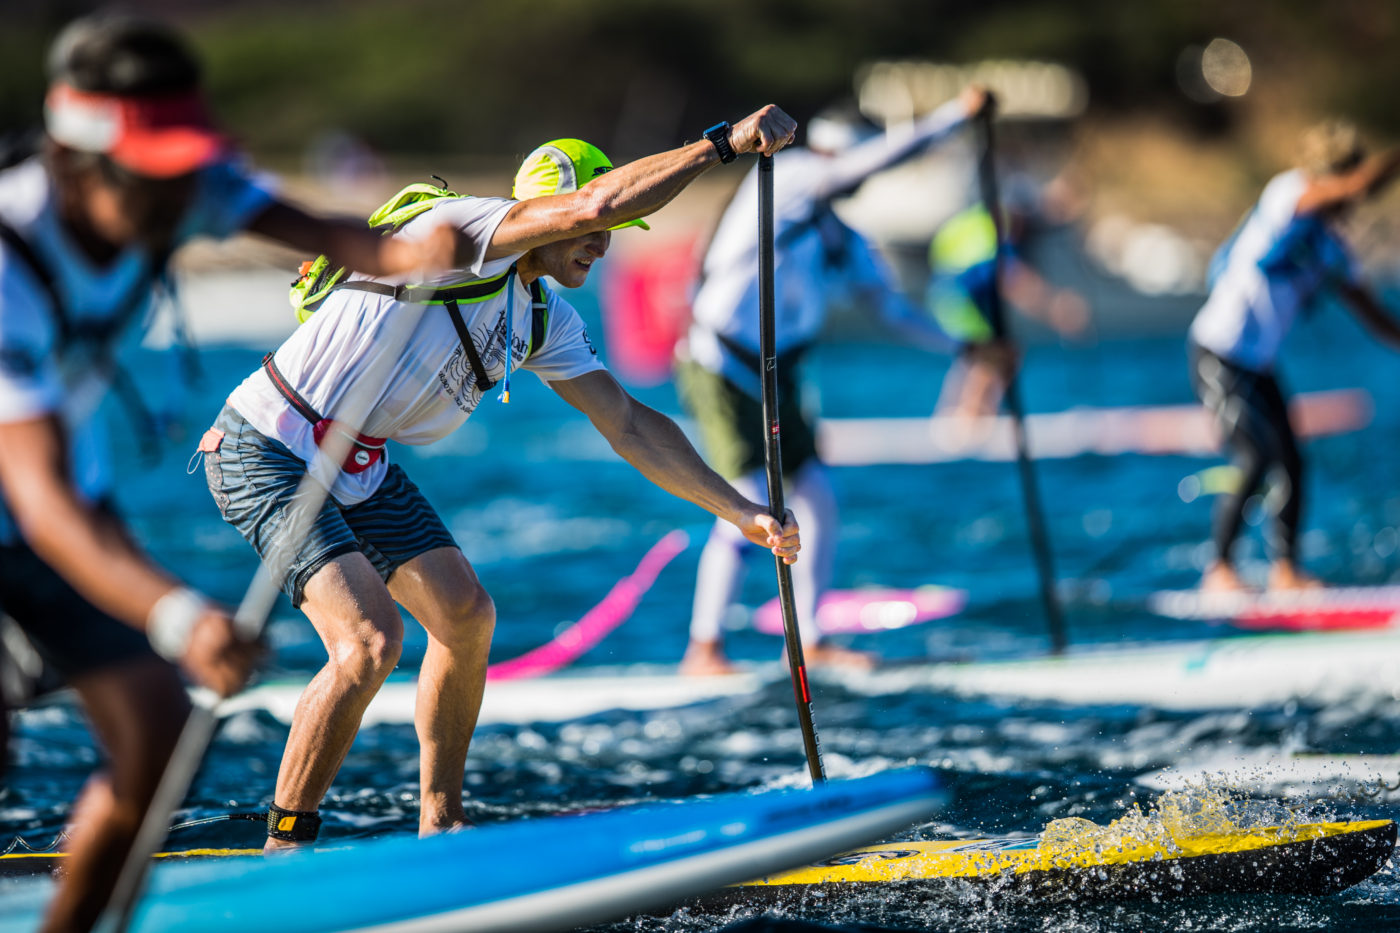 The World S Top 5 Most Grueling Sup Races Standup